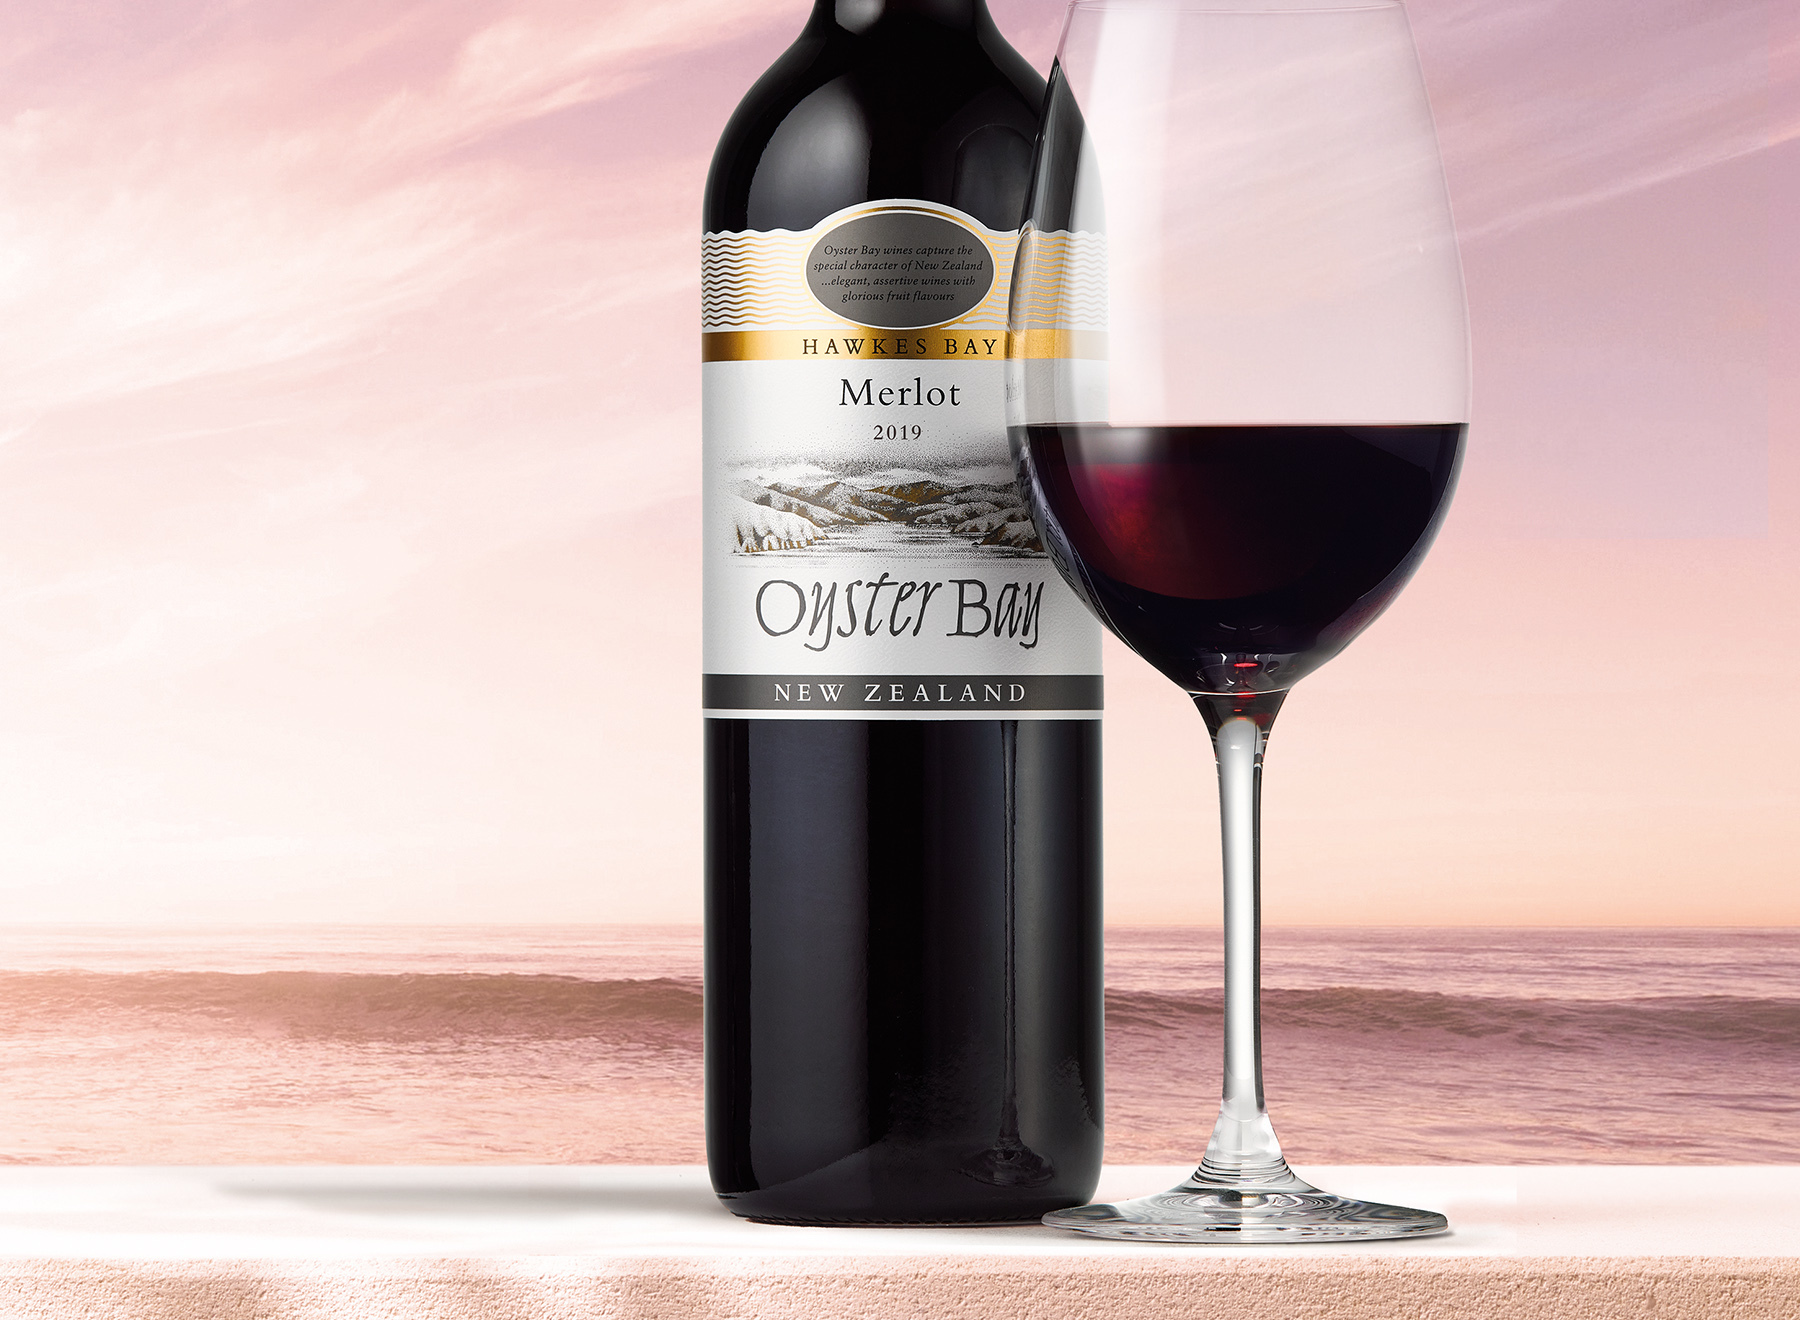 2019 oyster bay hawkes bay merlot bottle glass ledge